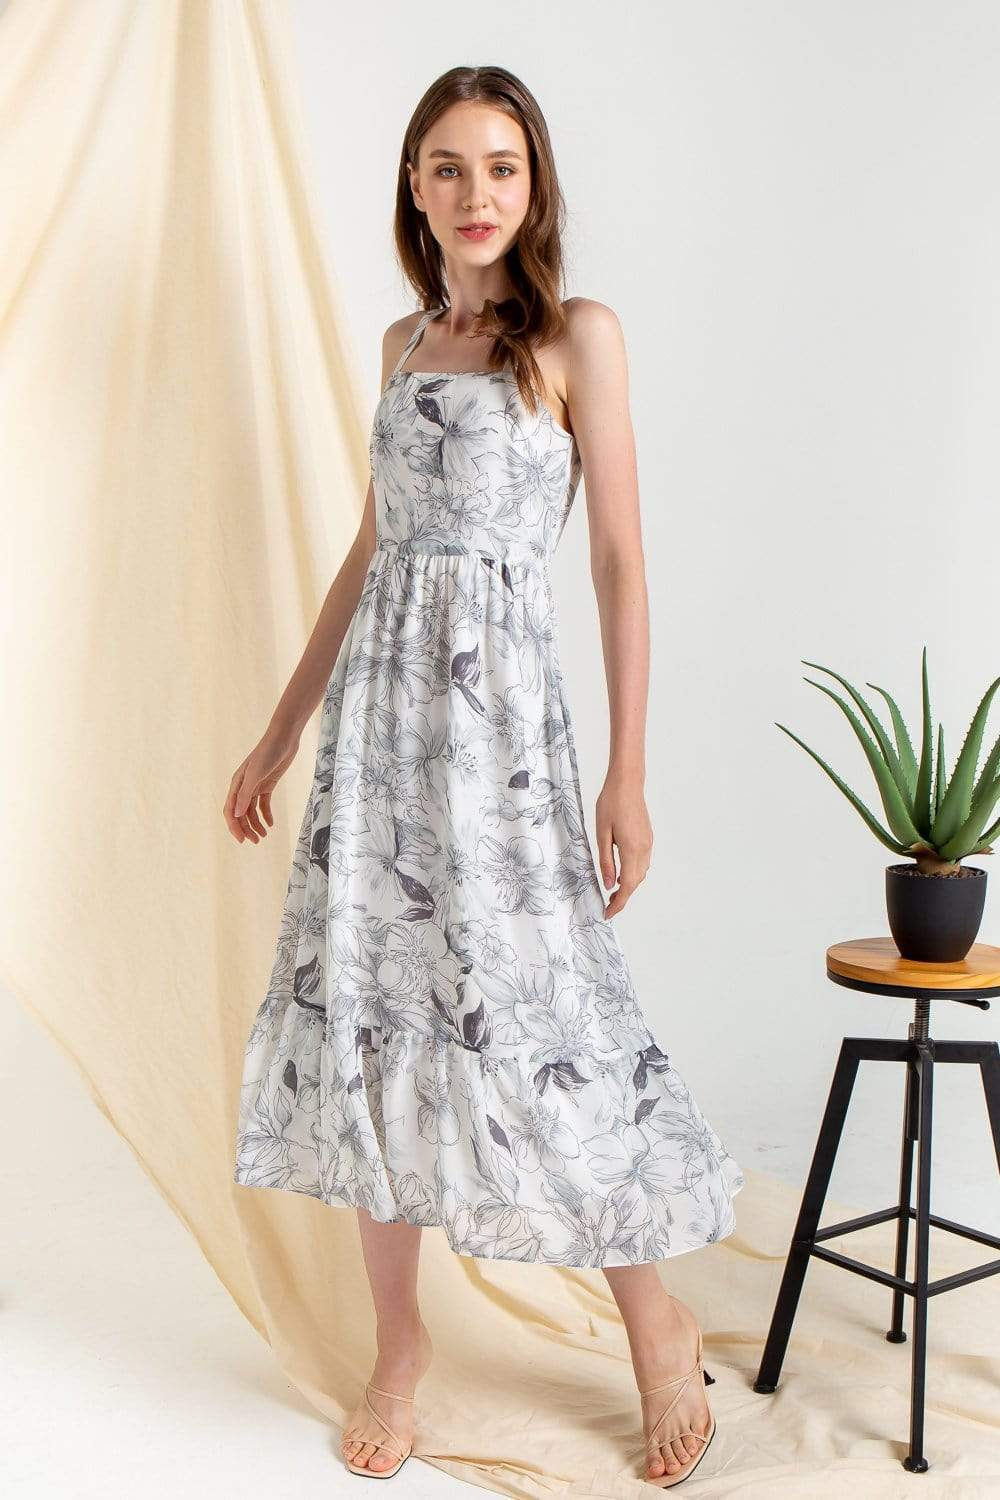 HEBRITT BLACK FLORAL FLOWY MIDI DRESS